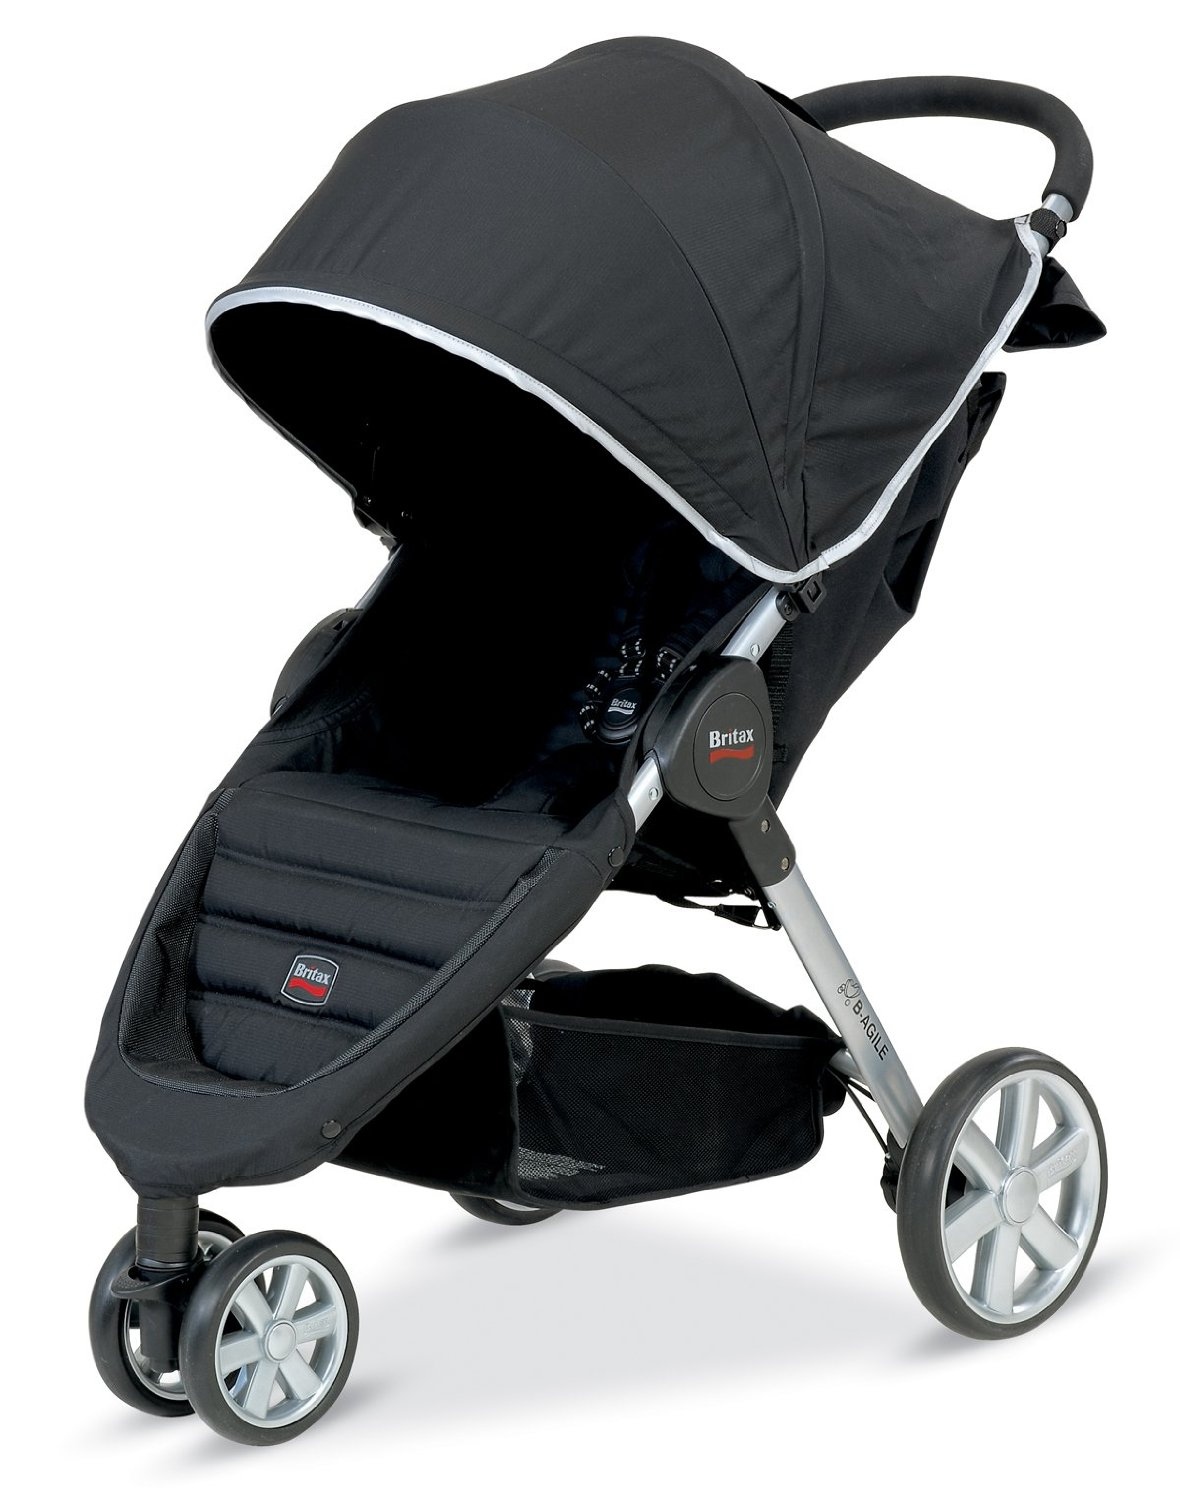 Car Seat Britax Reviews